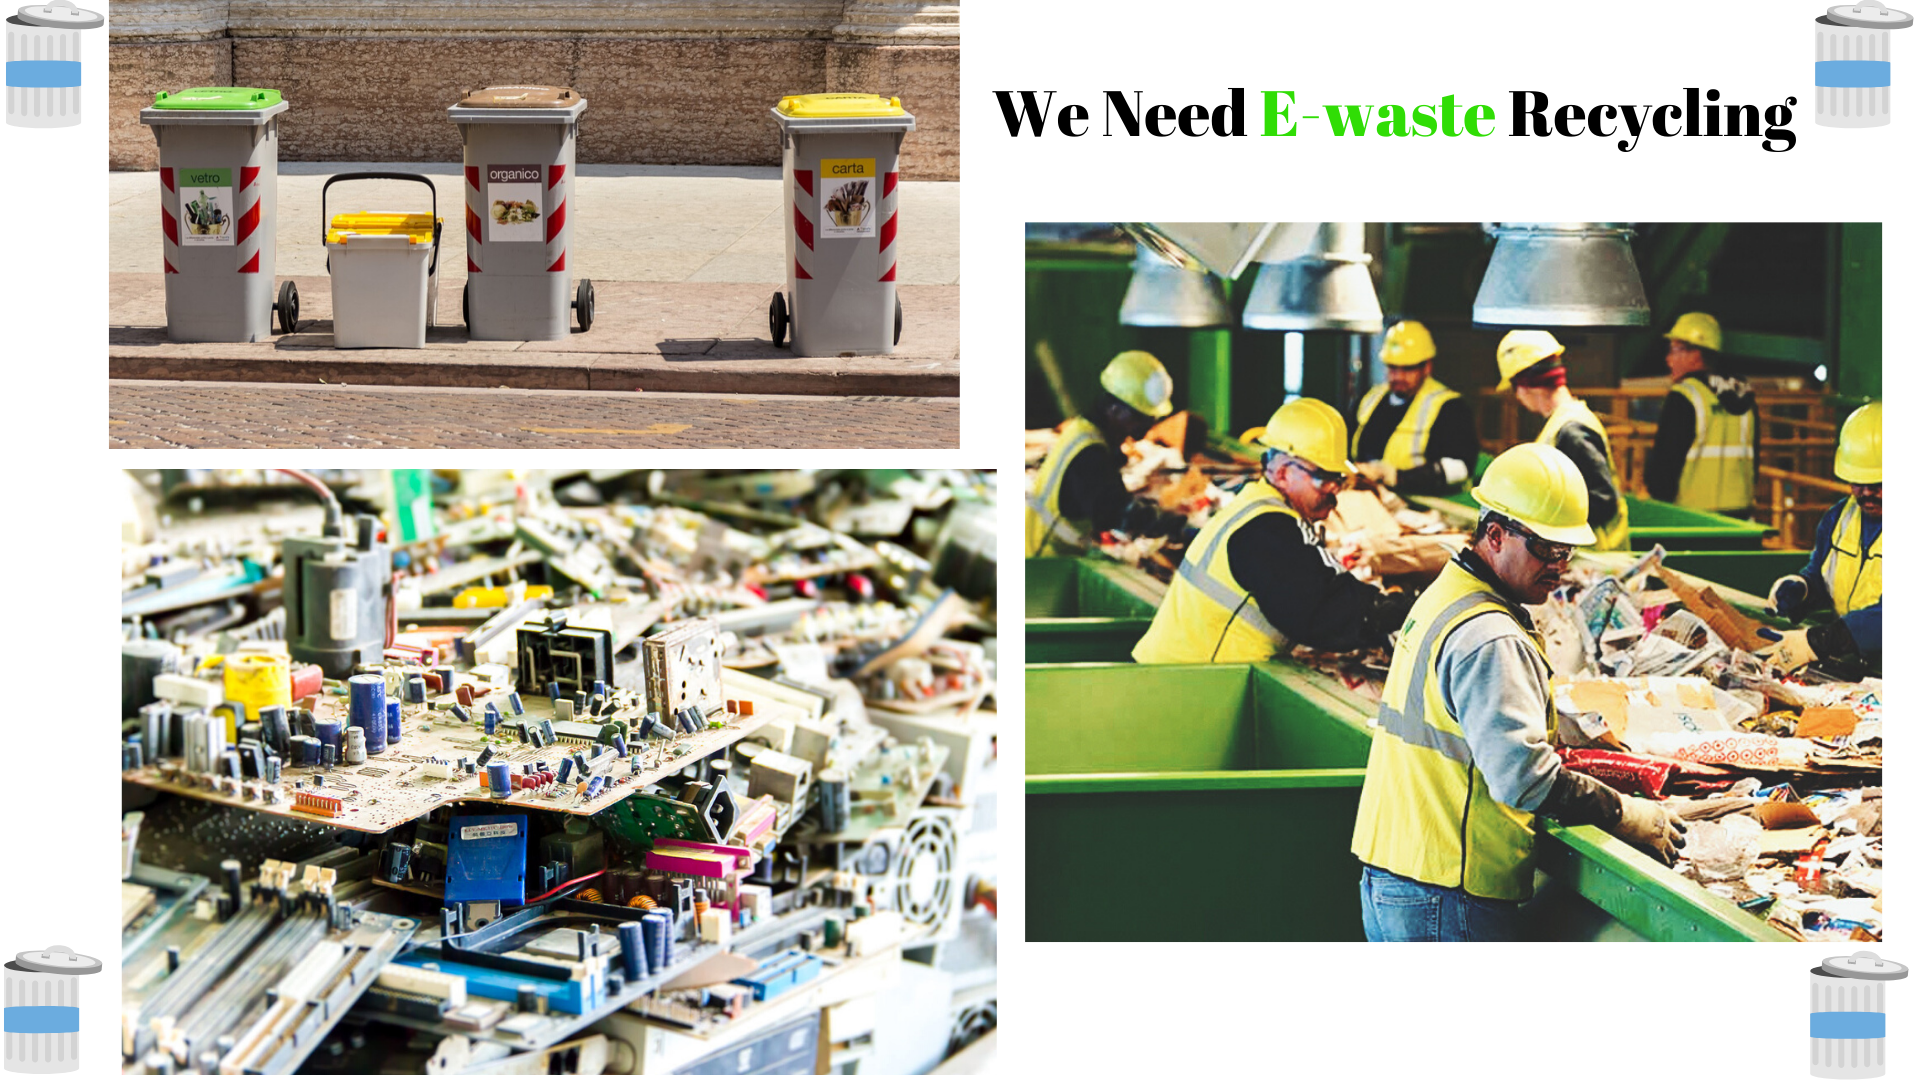 use recycled materials by waste management Melbourne firms